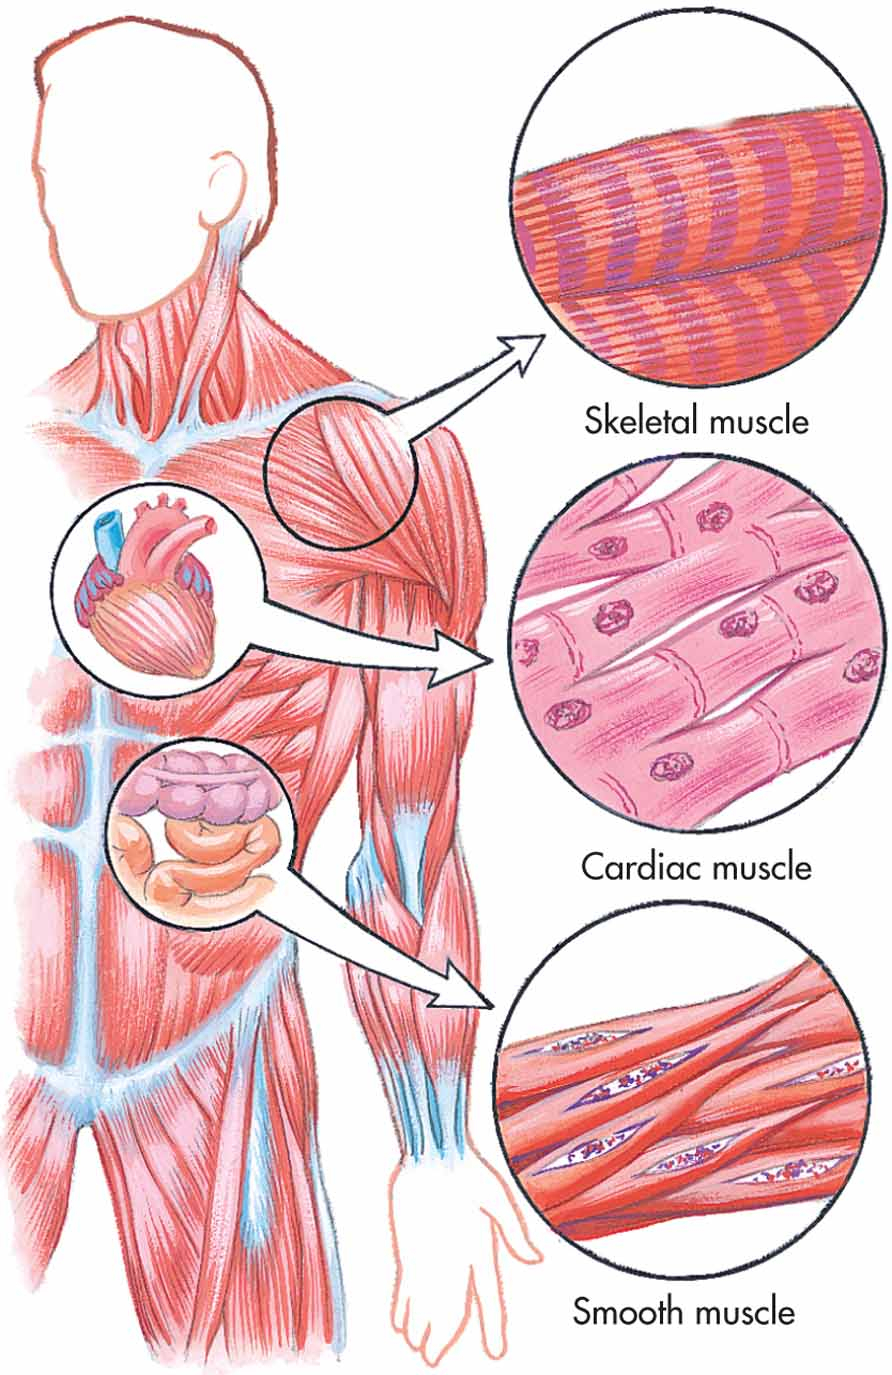 skeletal muscle diagram labeled what is a cluster tissue drawing at getdrawings com free for personal use 892x1375 types of easy to draw diagrams